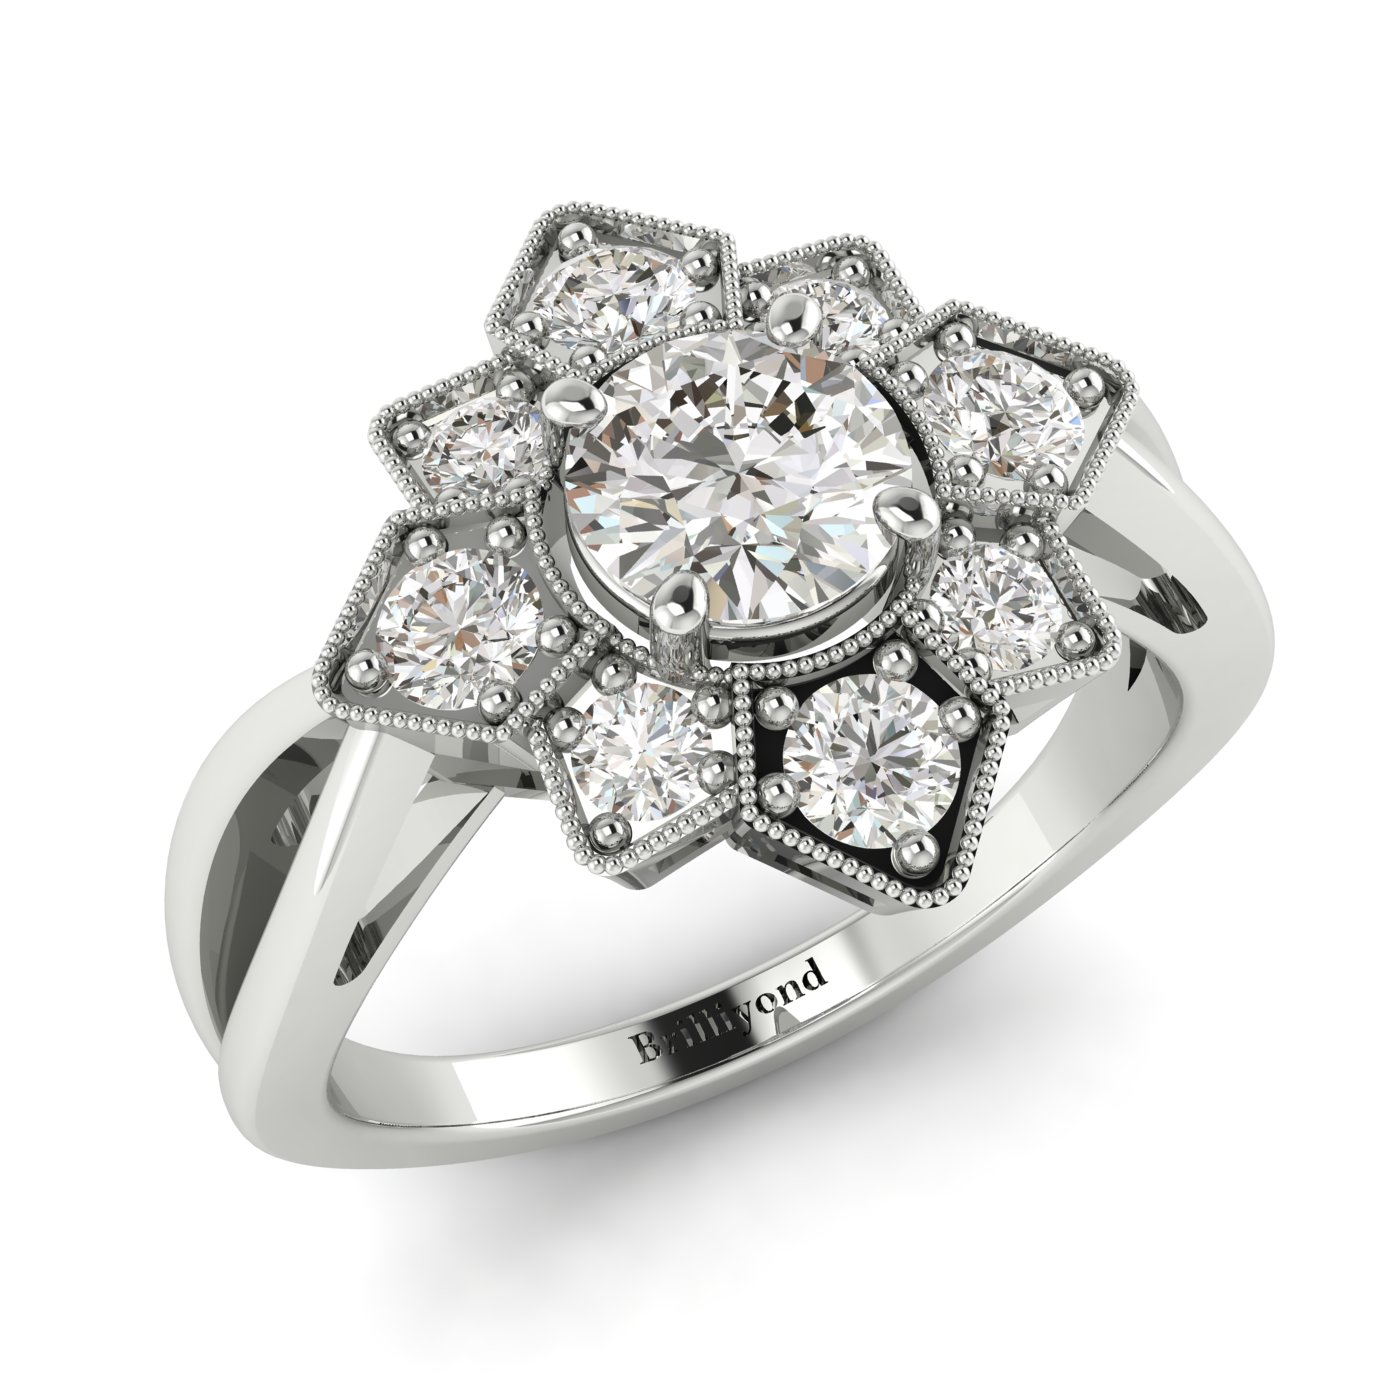 Diamond White Gold Cluster Engagement Ring Madonna_image2